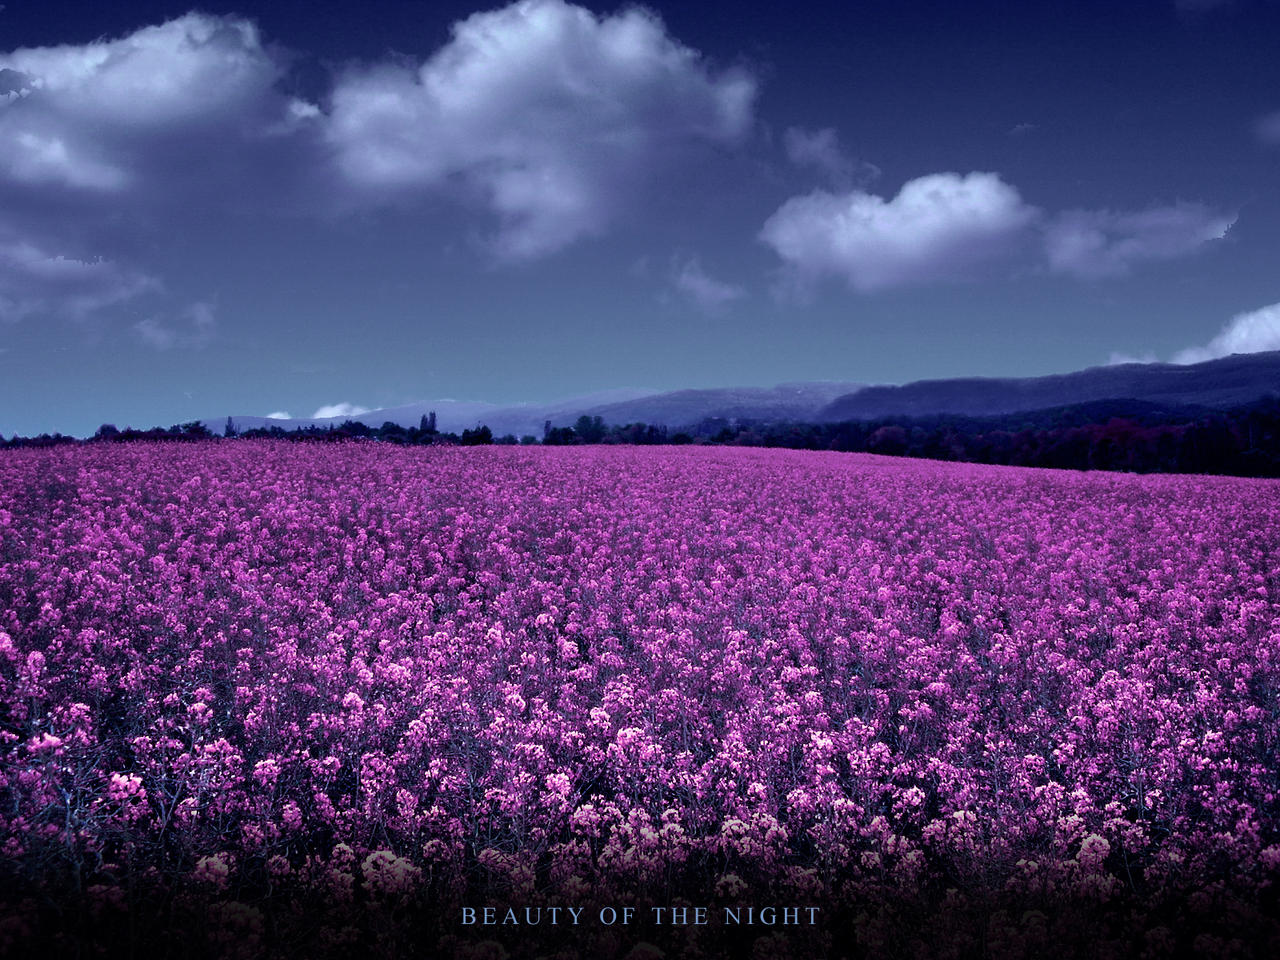 Beauty of the night flowers by dragonetty on deviantart beauty of the night flowers by dragonetty izmirmasajfo